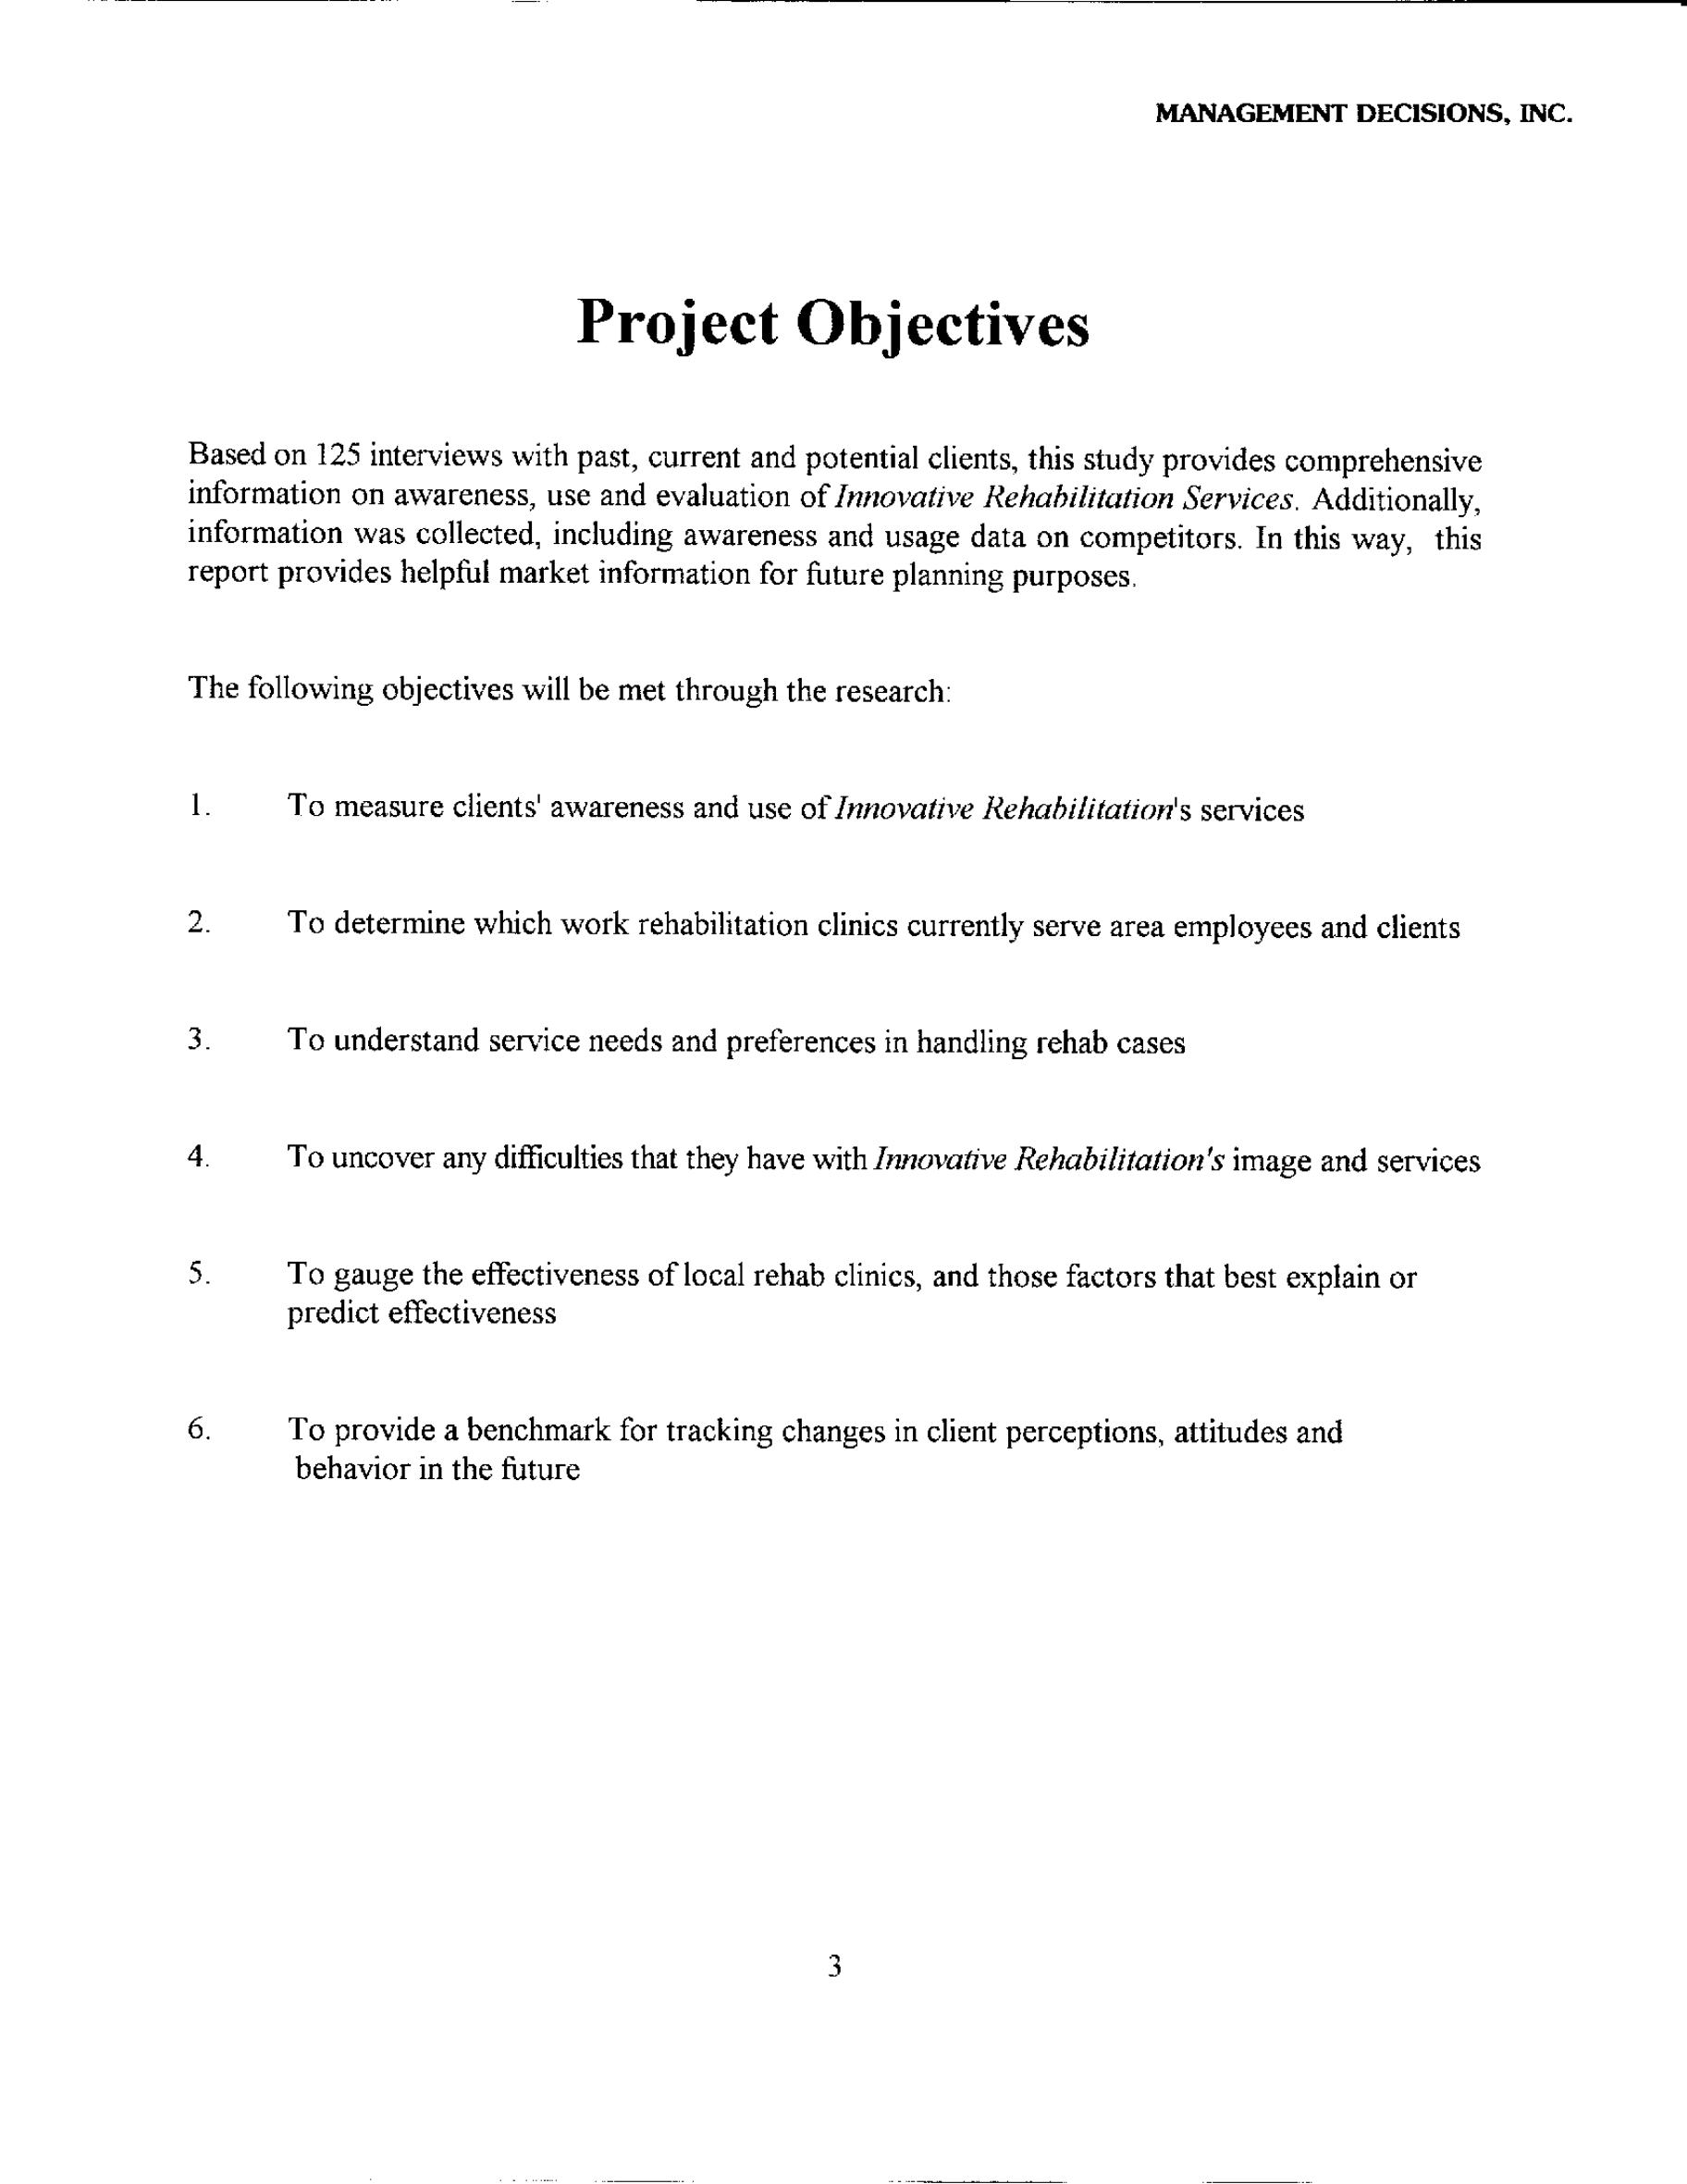 Outstanding Market Analysis Report Template Image - FORTSETZUNG ...